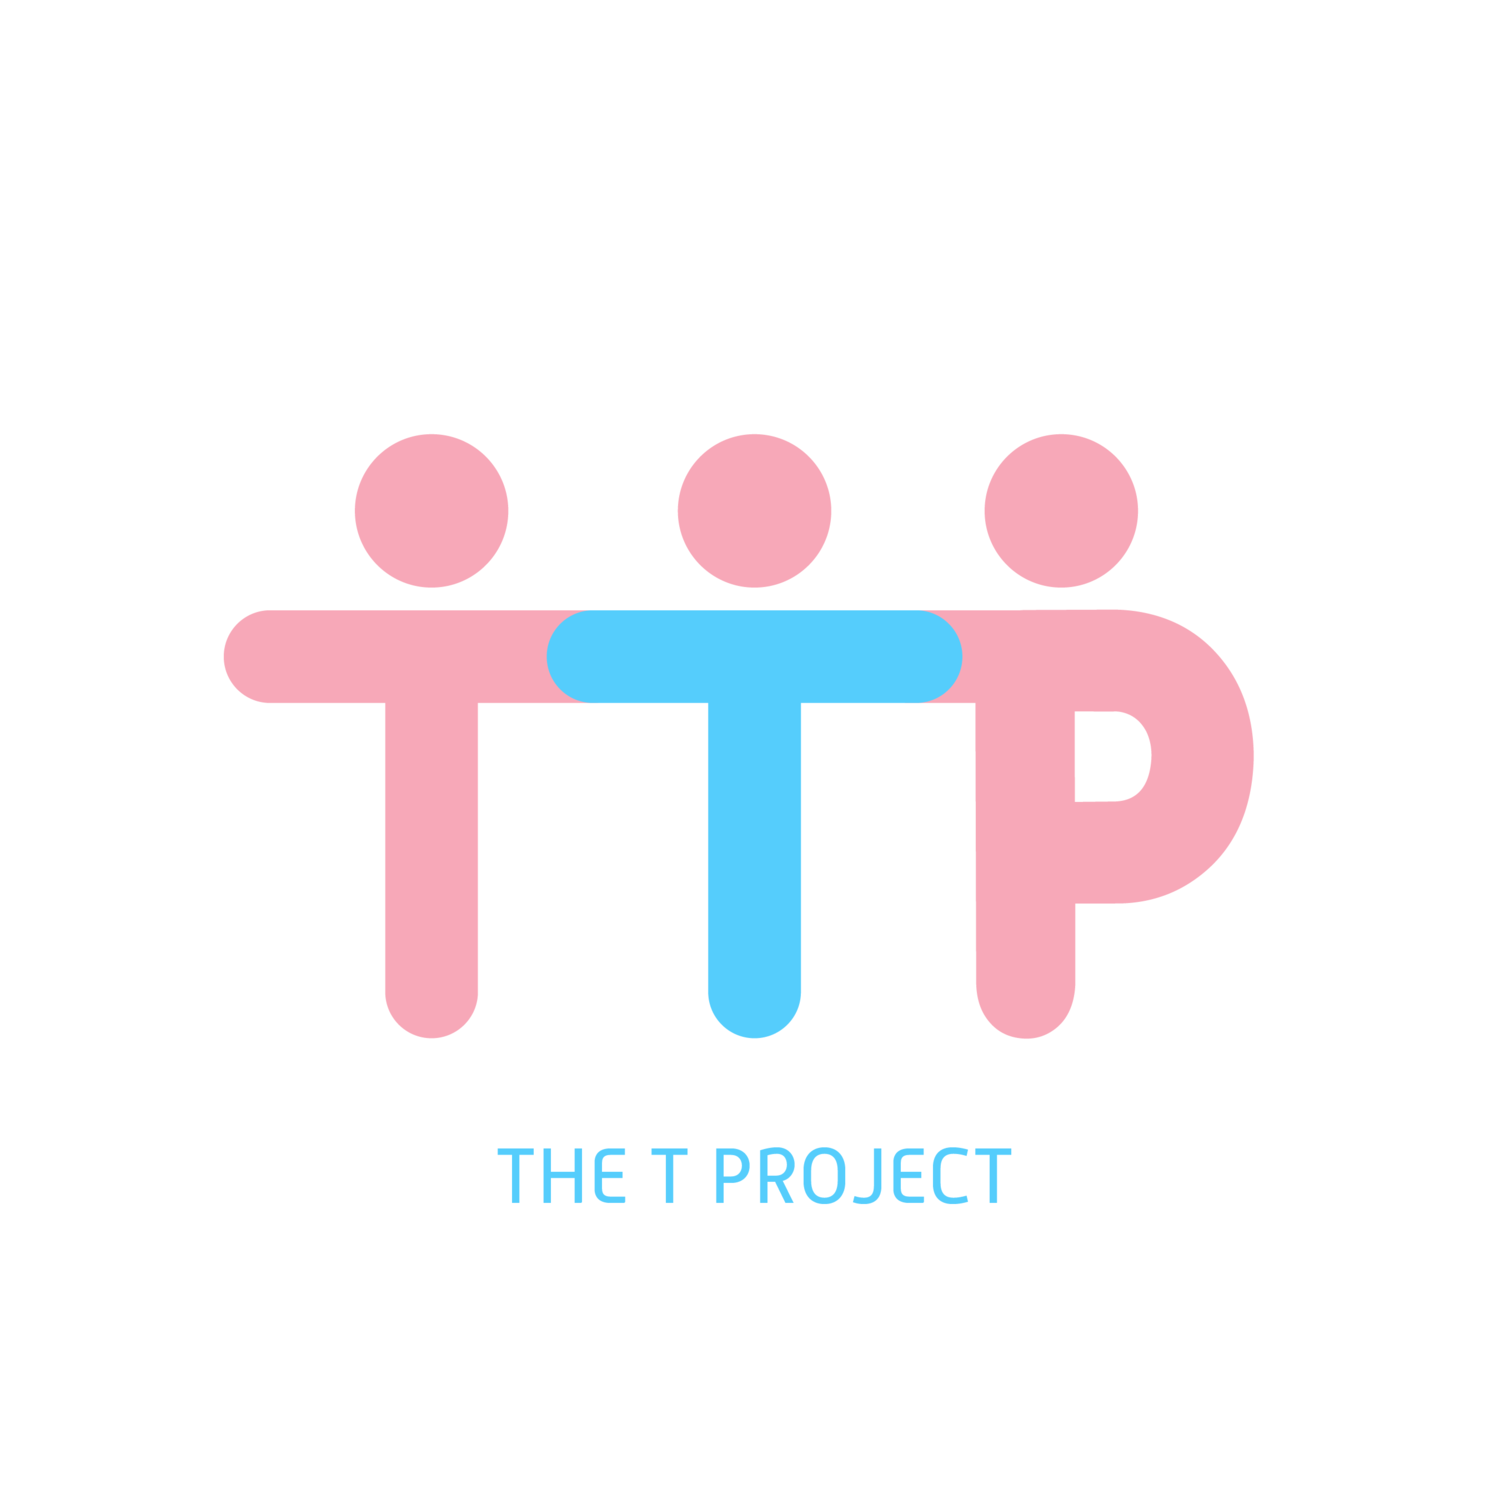 The T Project